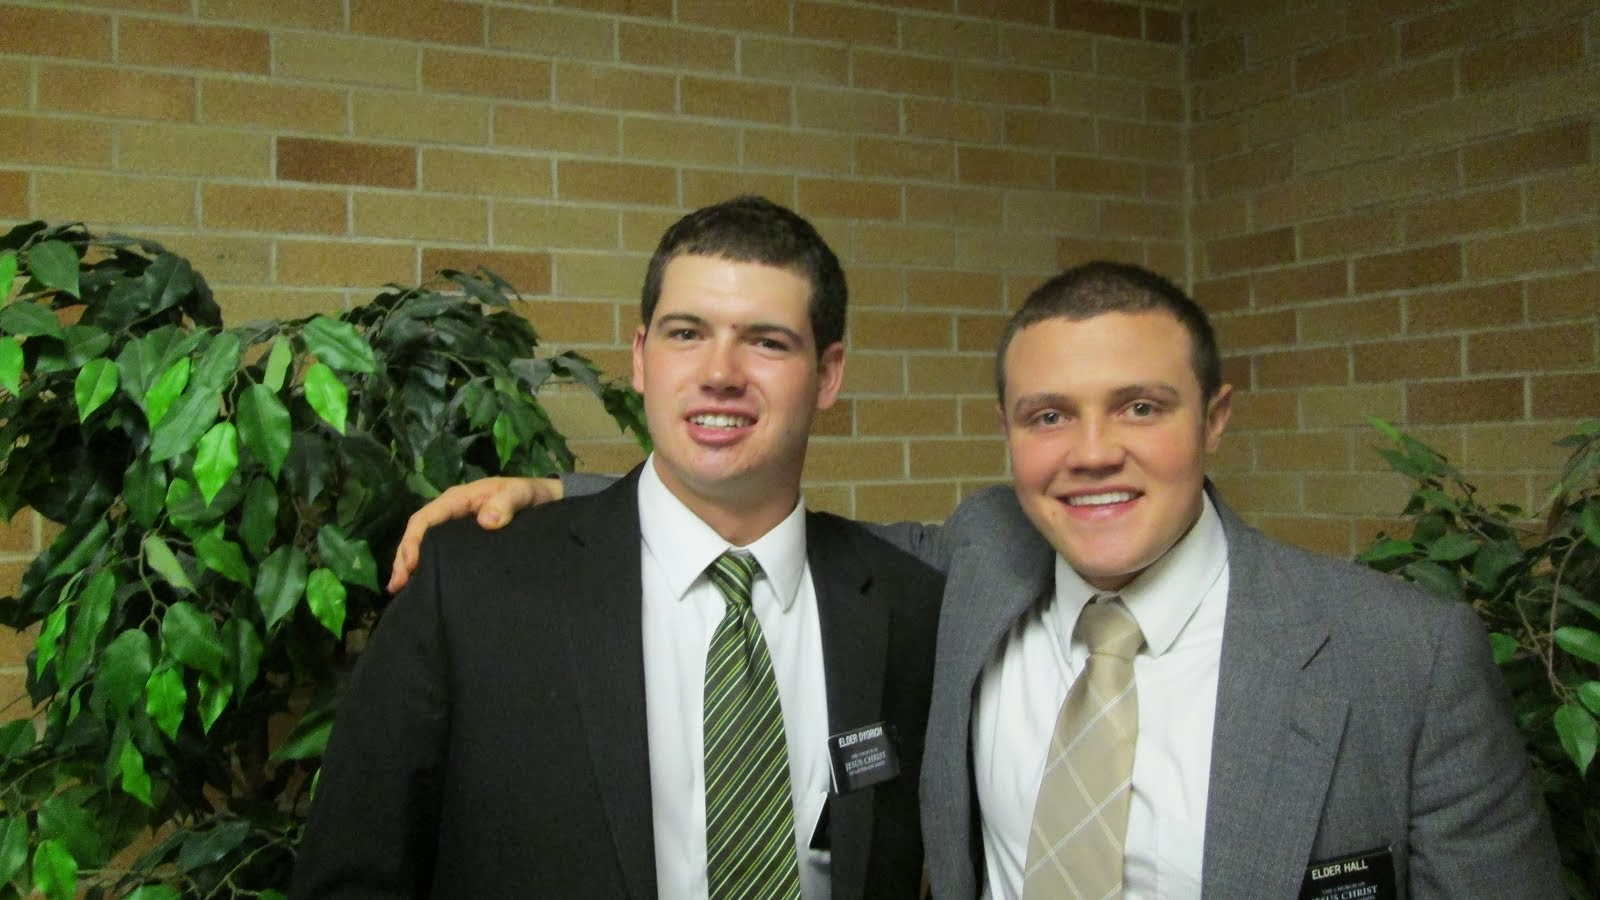 Elders Dyorich and Hall